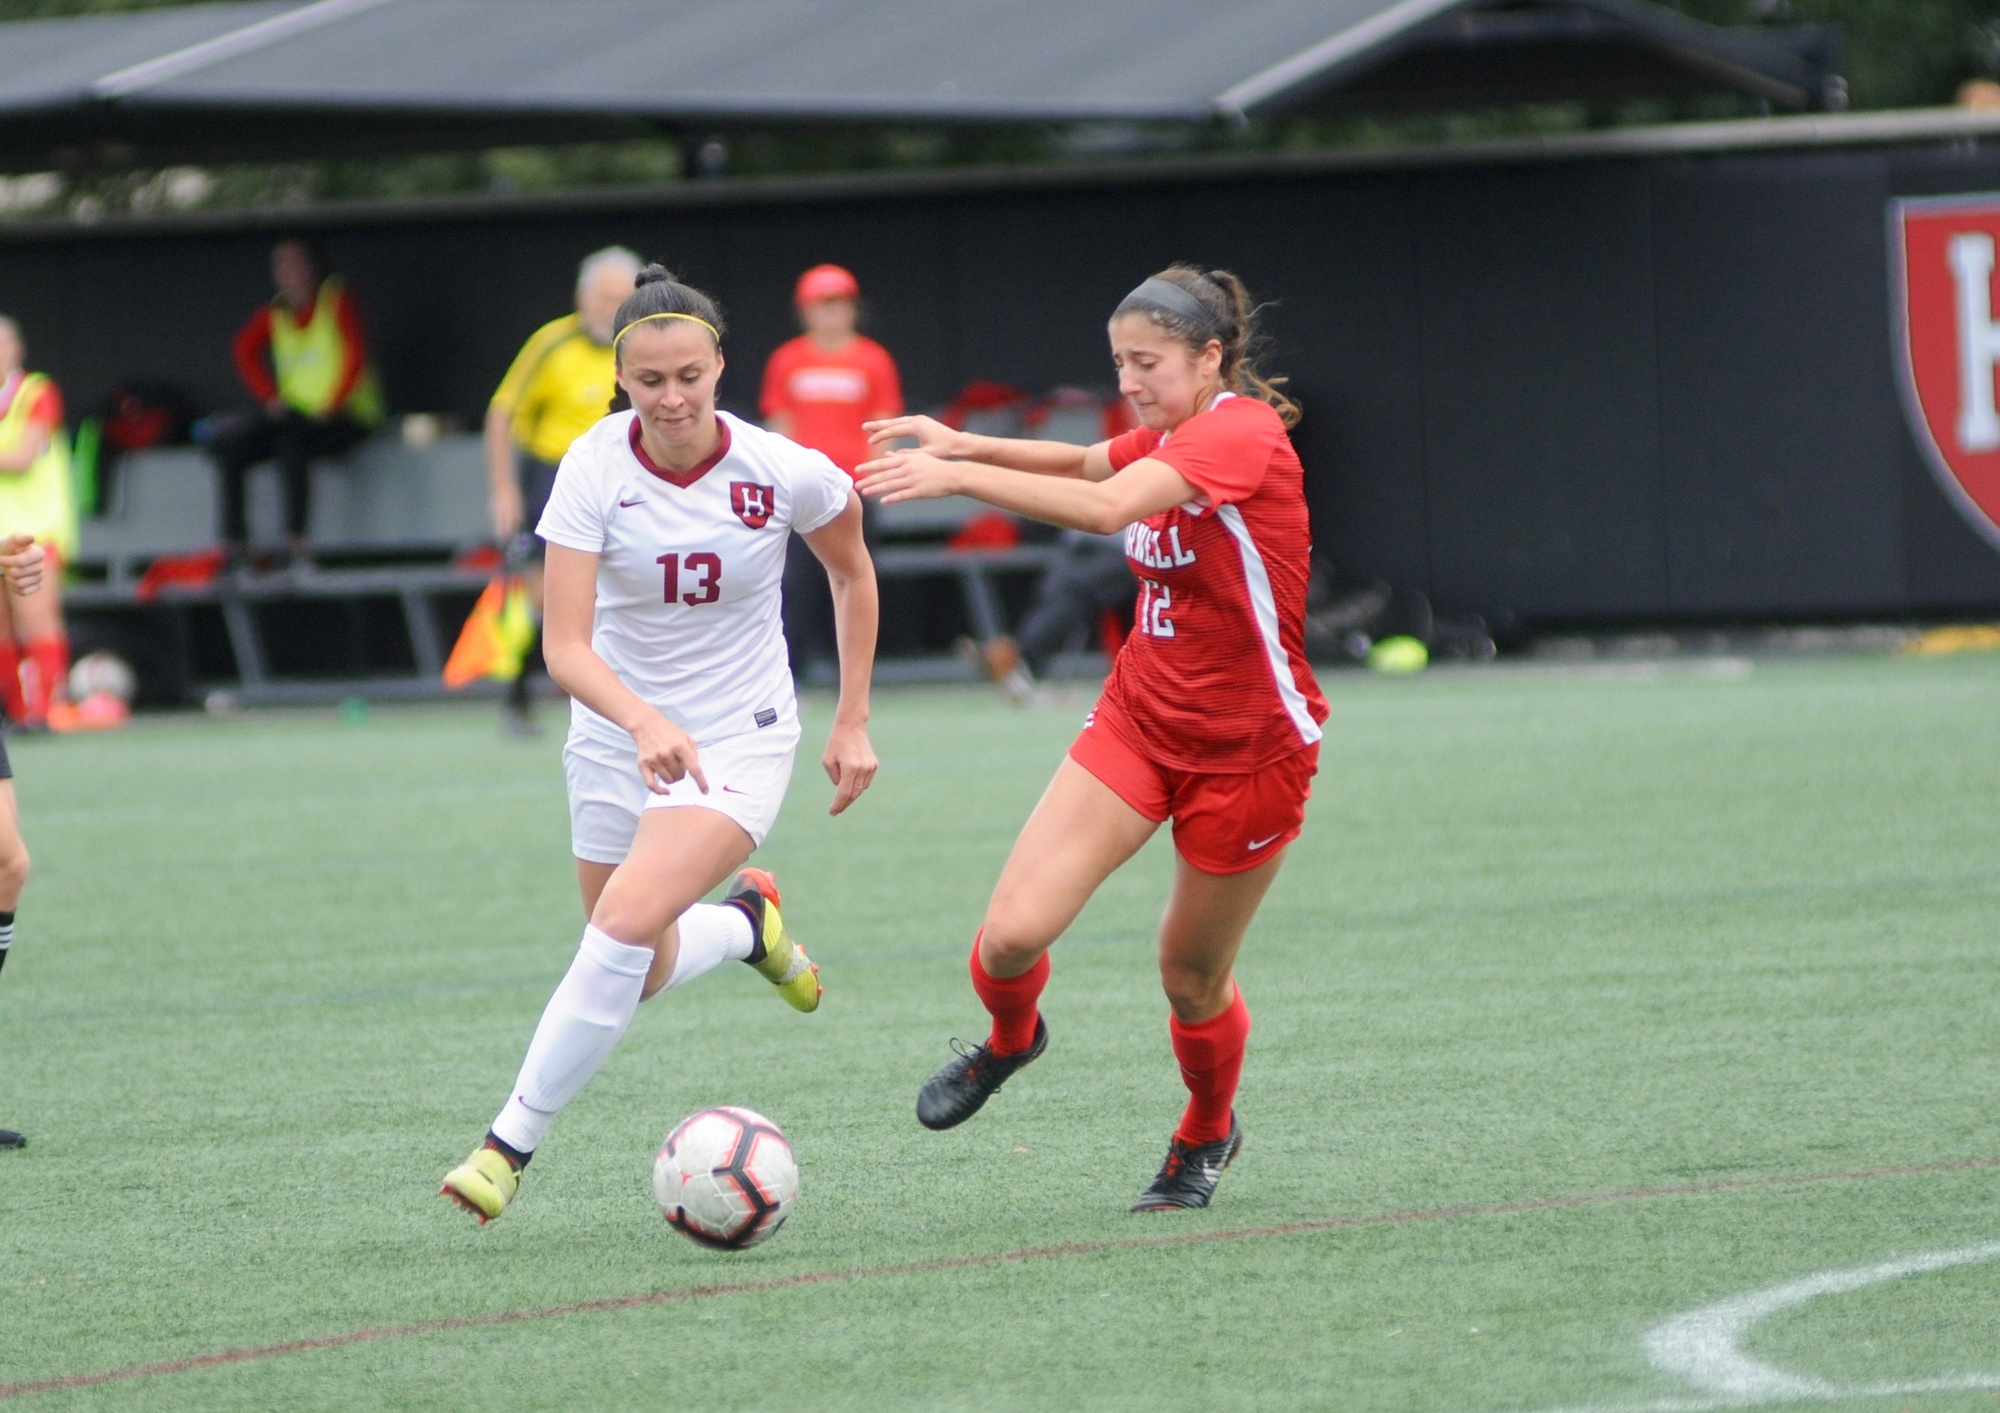 Leah Mohammadi scored from a direct free kick on Tuesday, bringing her season total to a team-high six goals.